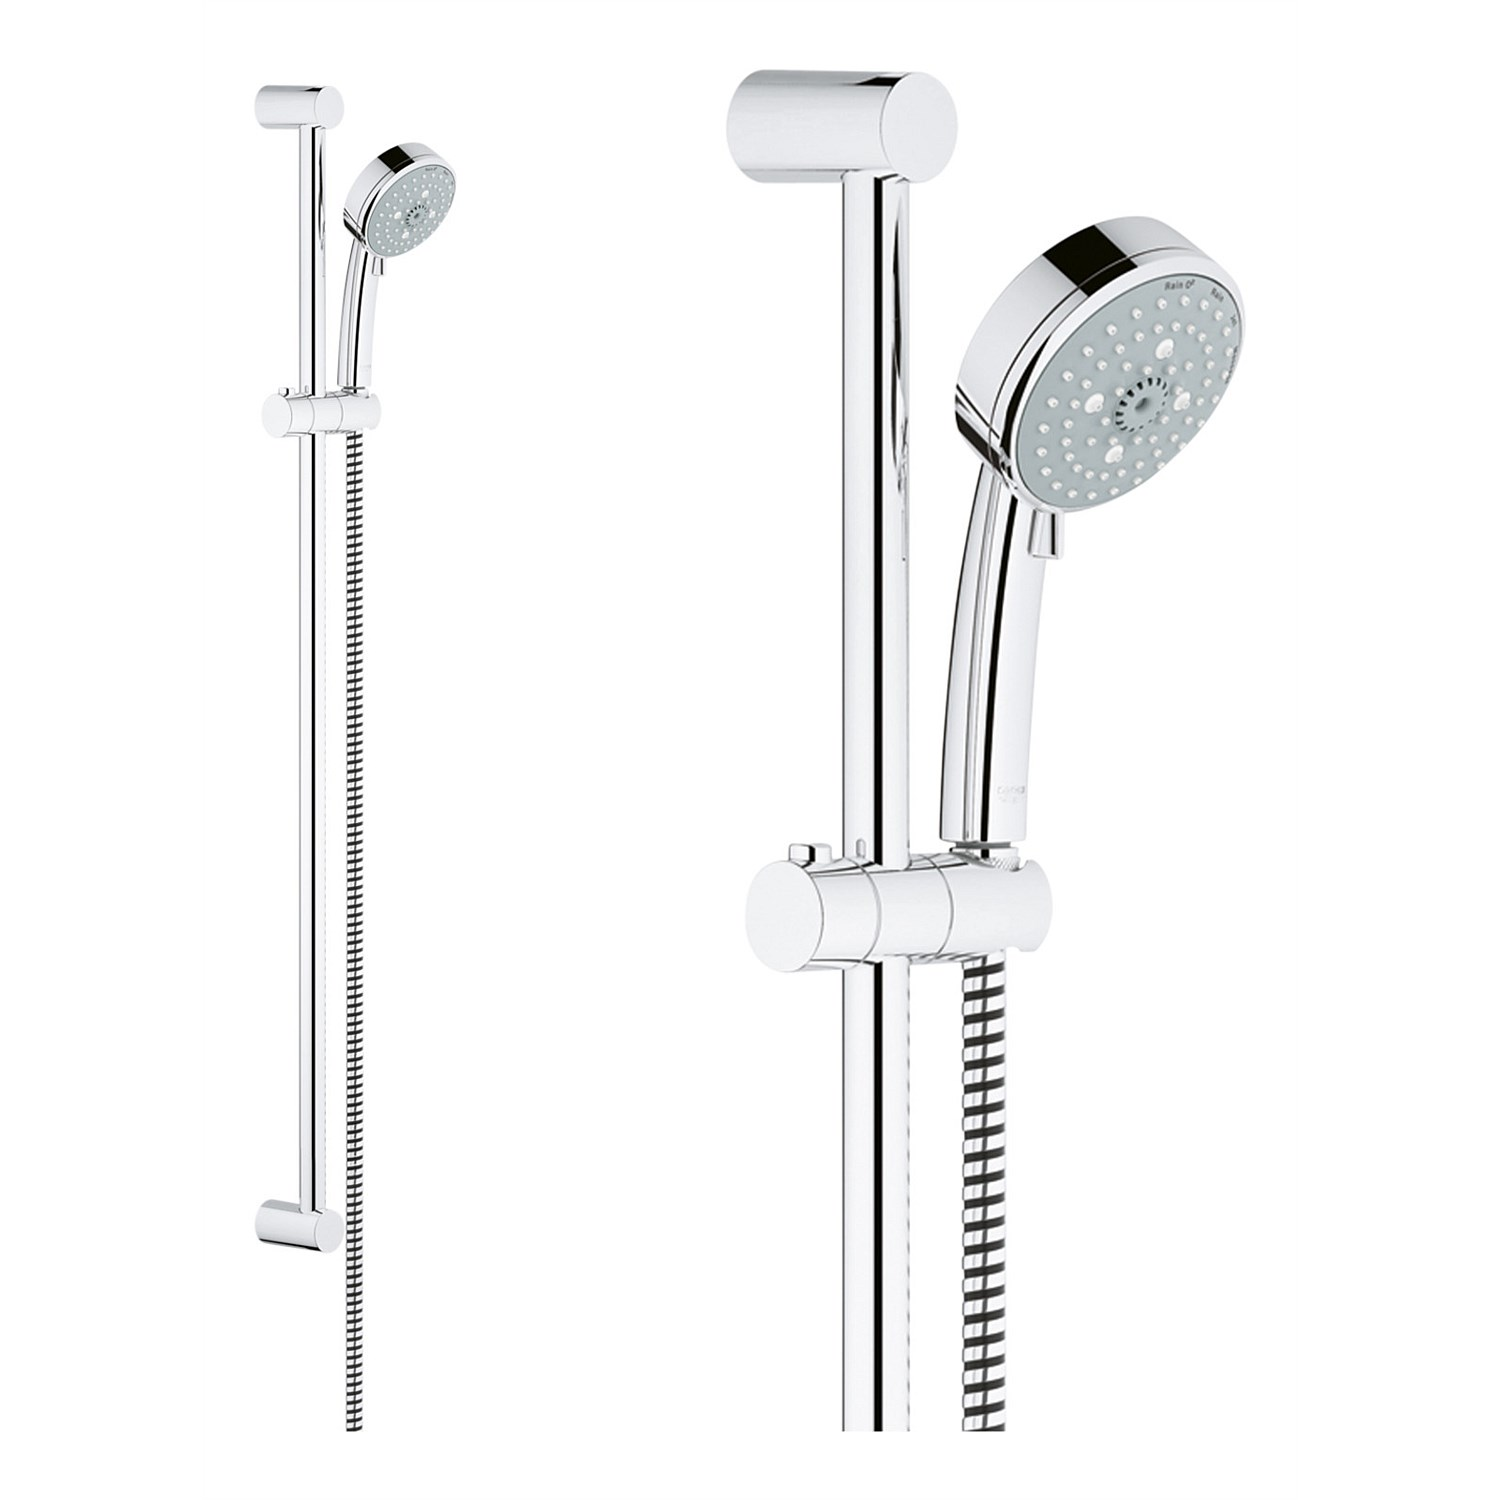 Slide Showers - Grohe Tempesta Cosmo 100 Slide Shower With 4 ...